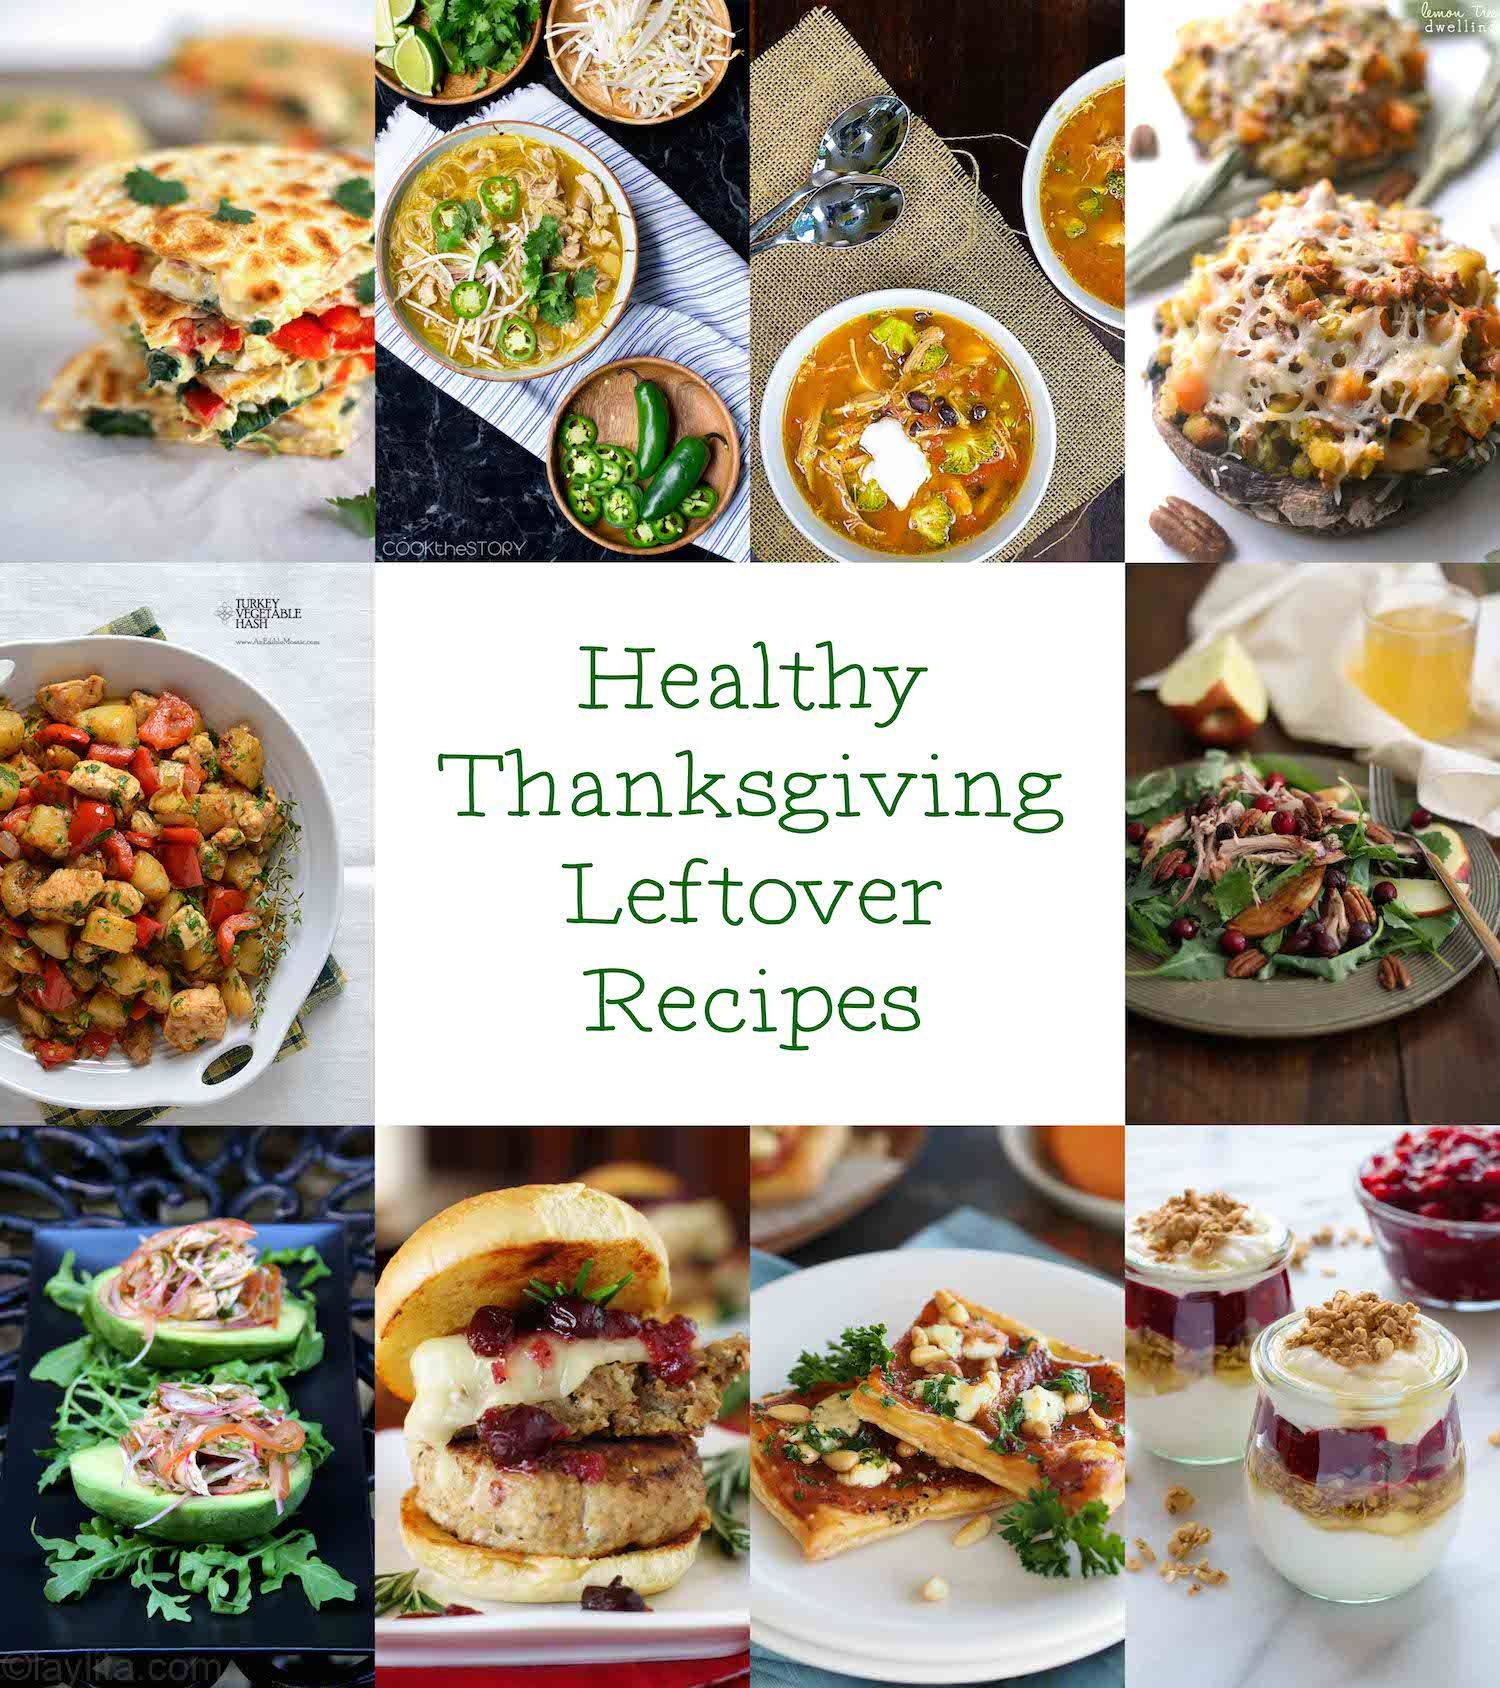 Healthy Thanksgiving Meals  20 Healthy Thanksgiving Leftover Recipes A Healthy Life